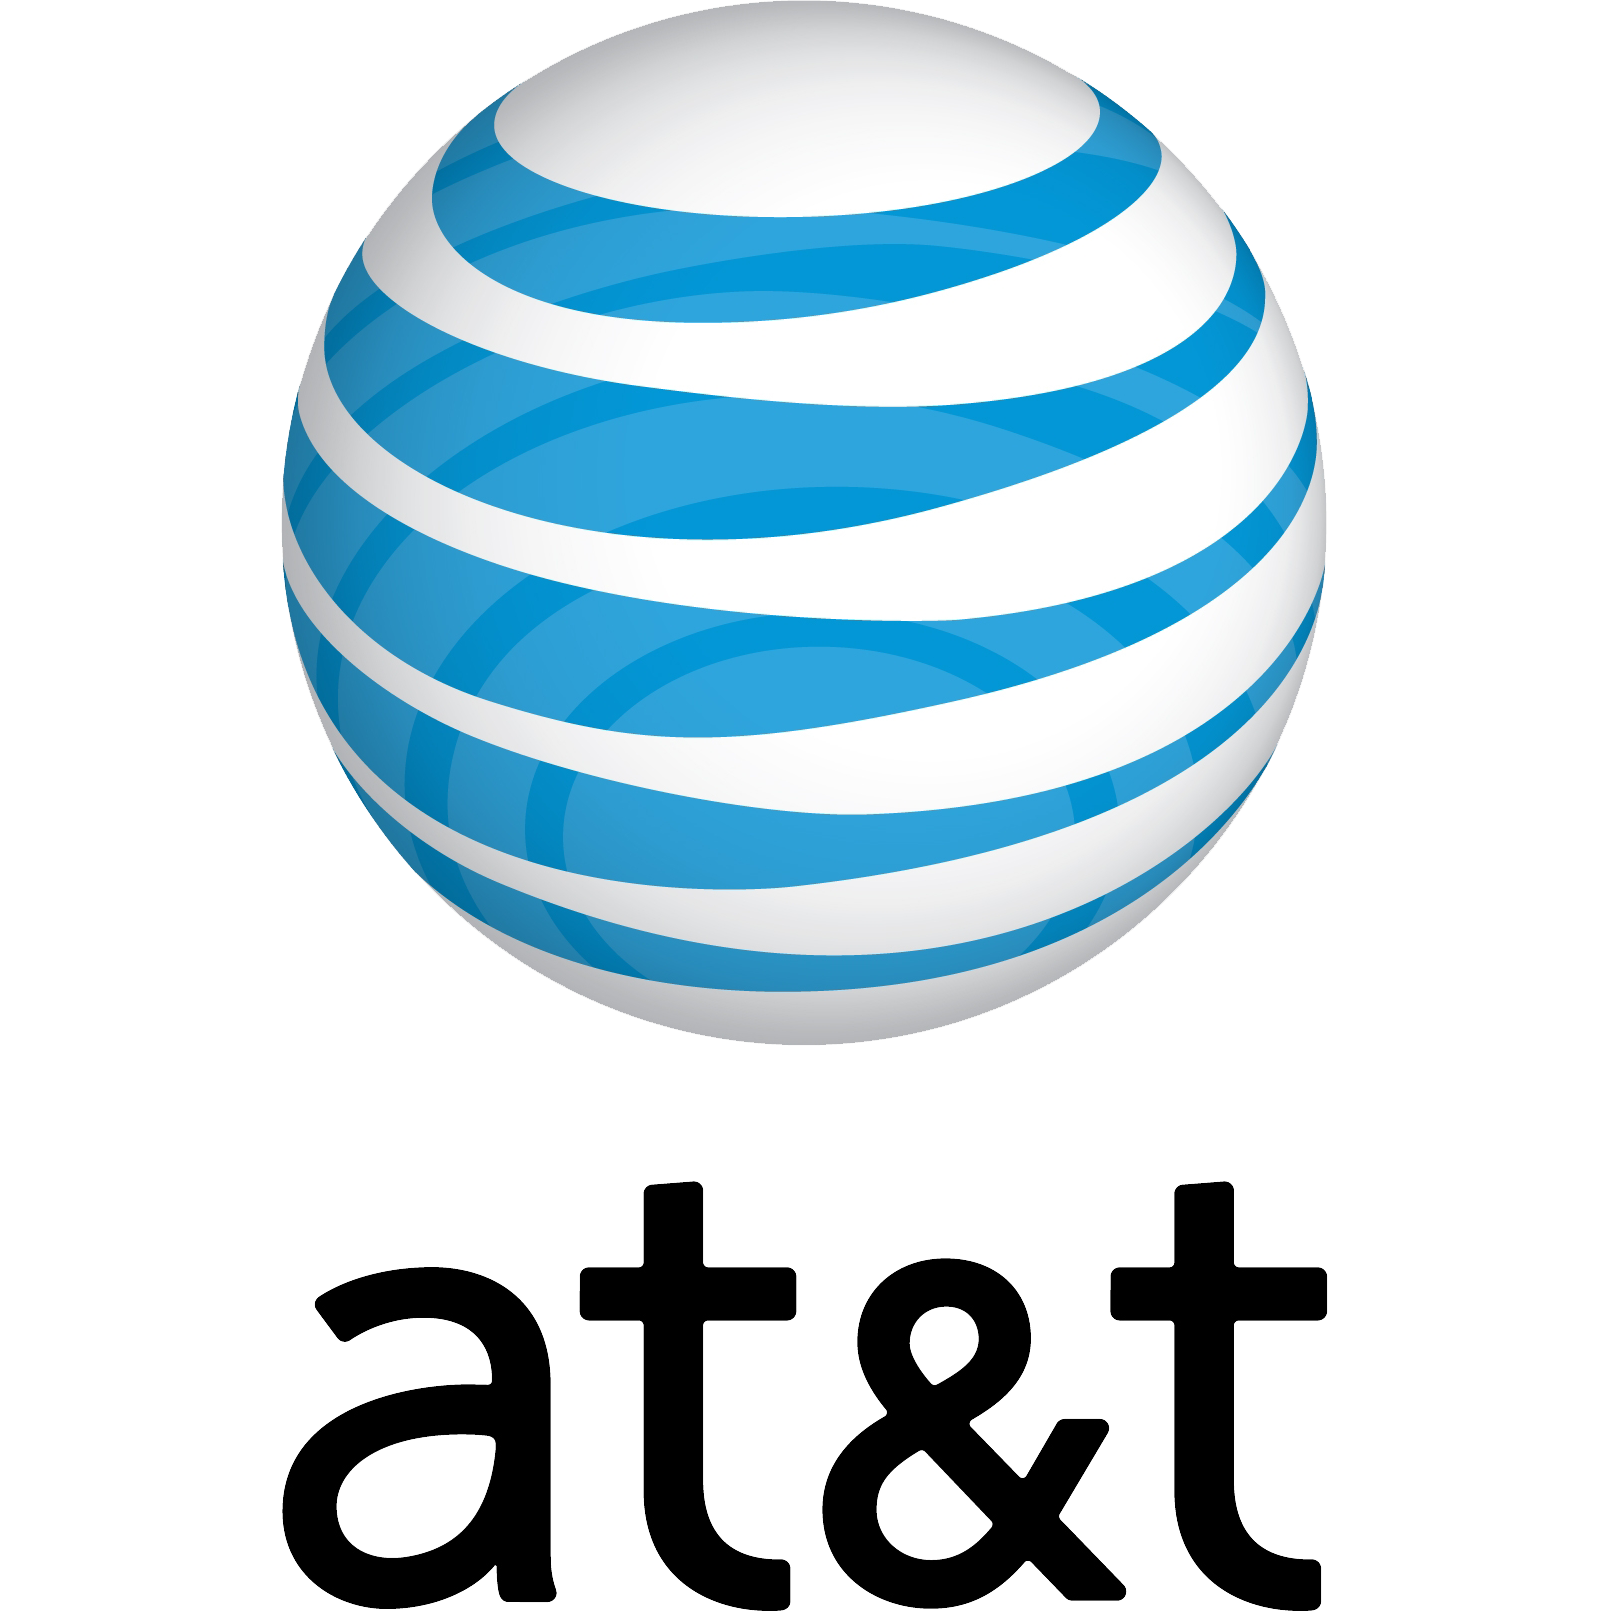 Breaking: AT&T Buys T-Mobile USA from Deutsche Telekom for $39 Billion